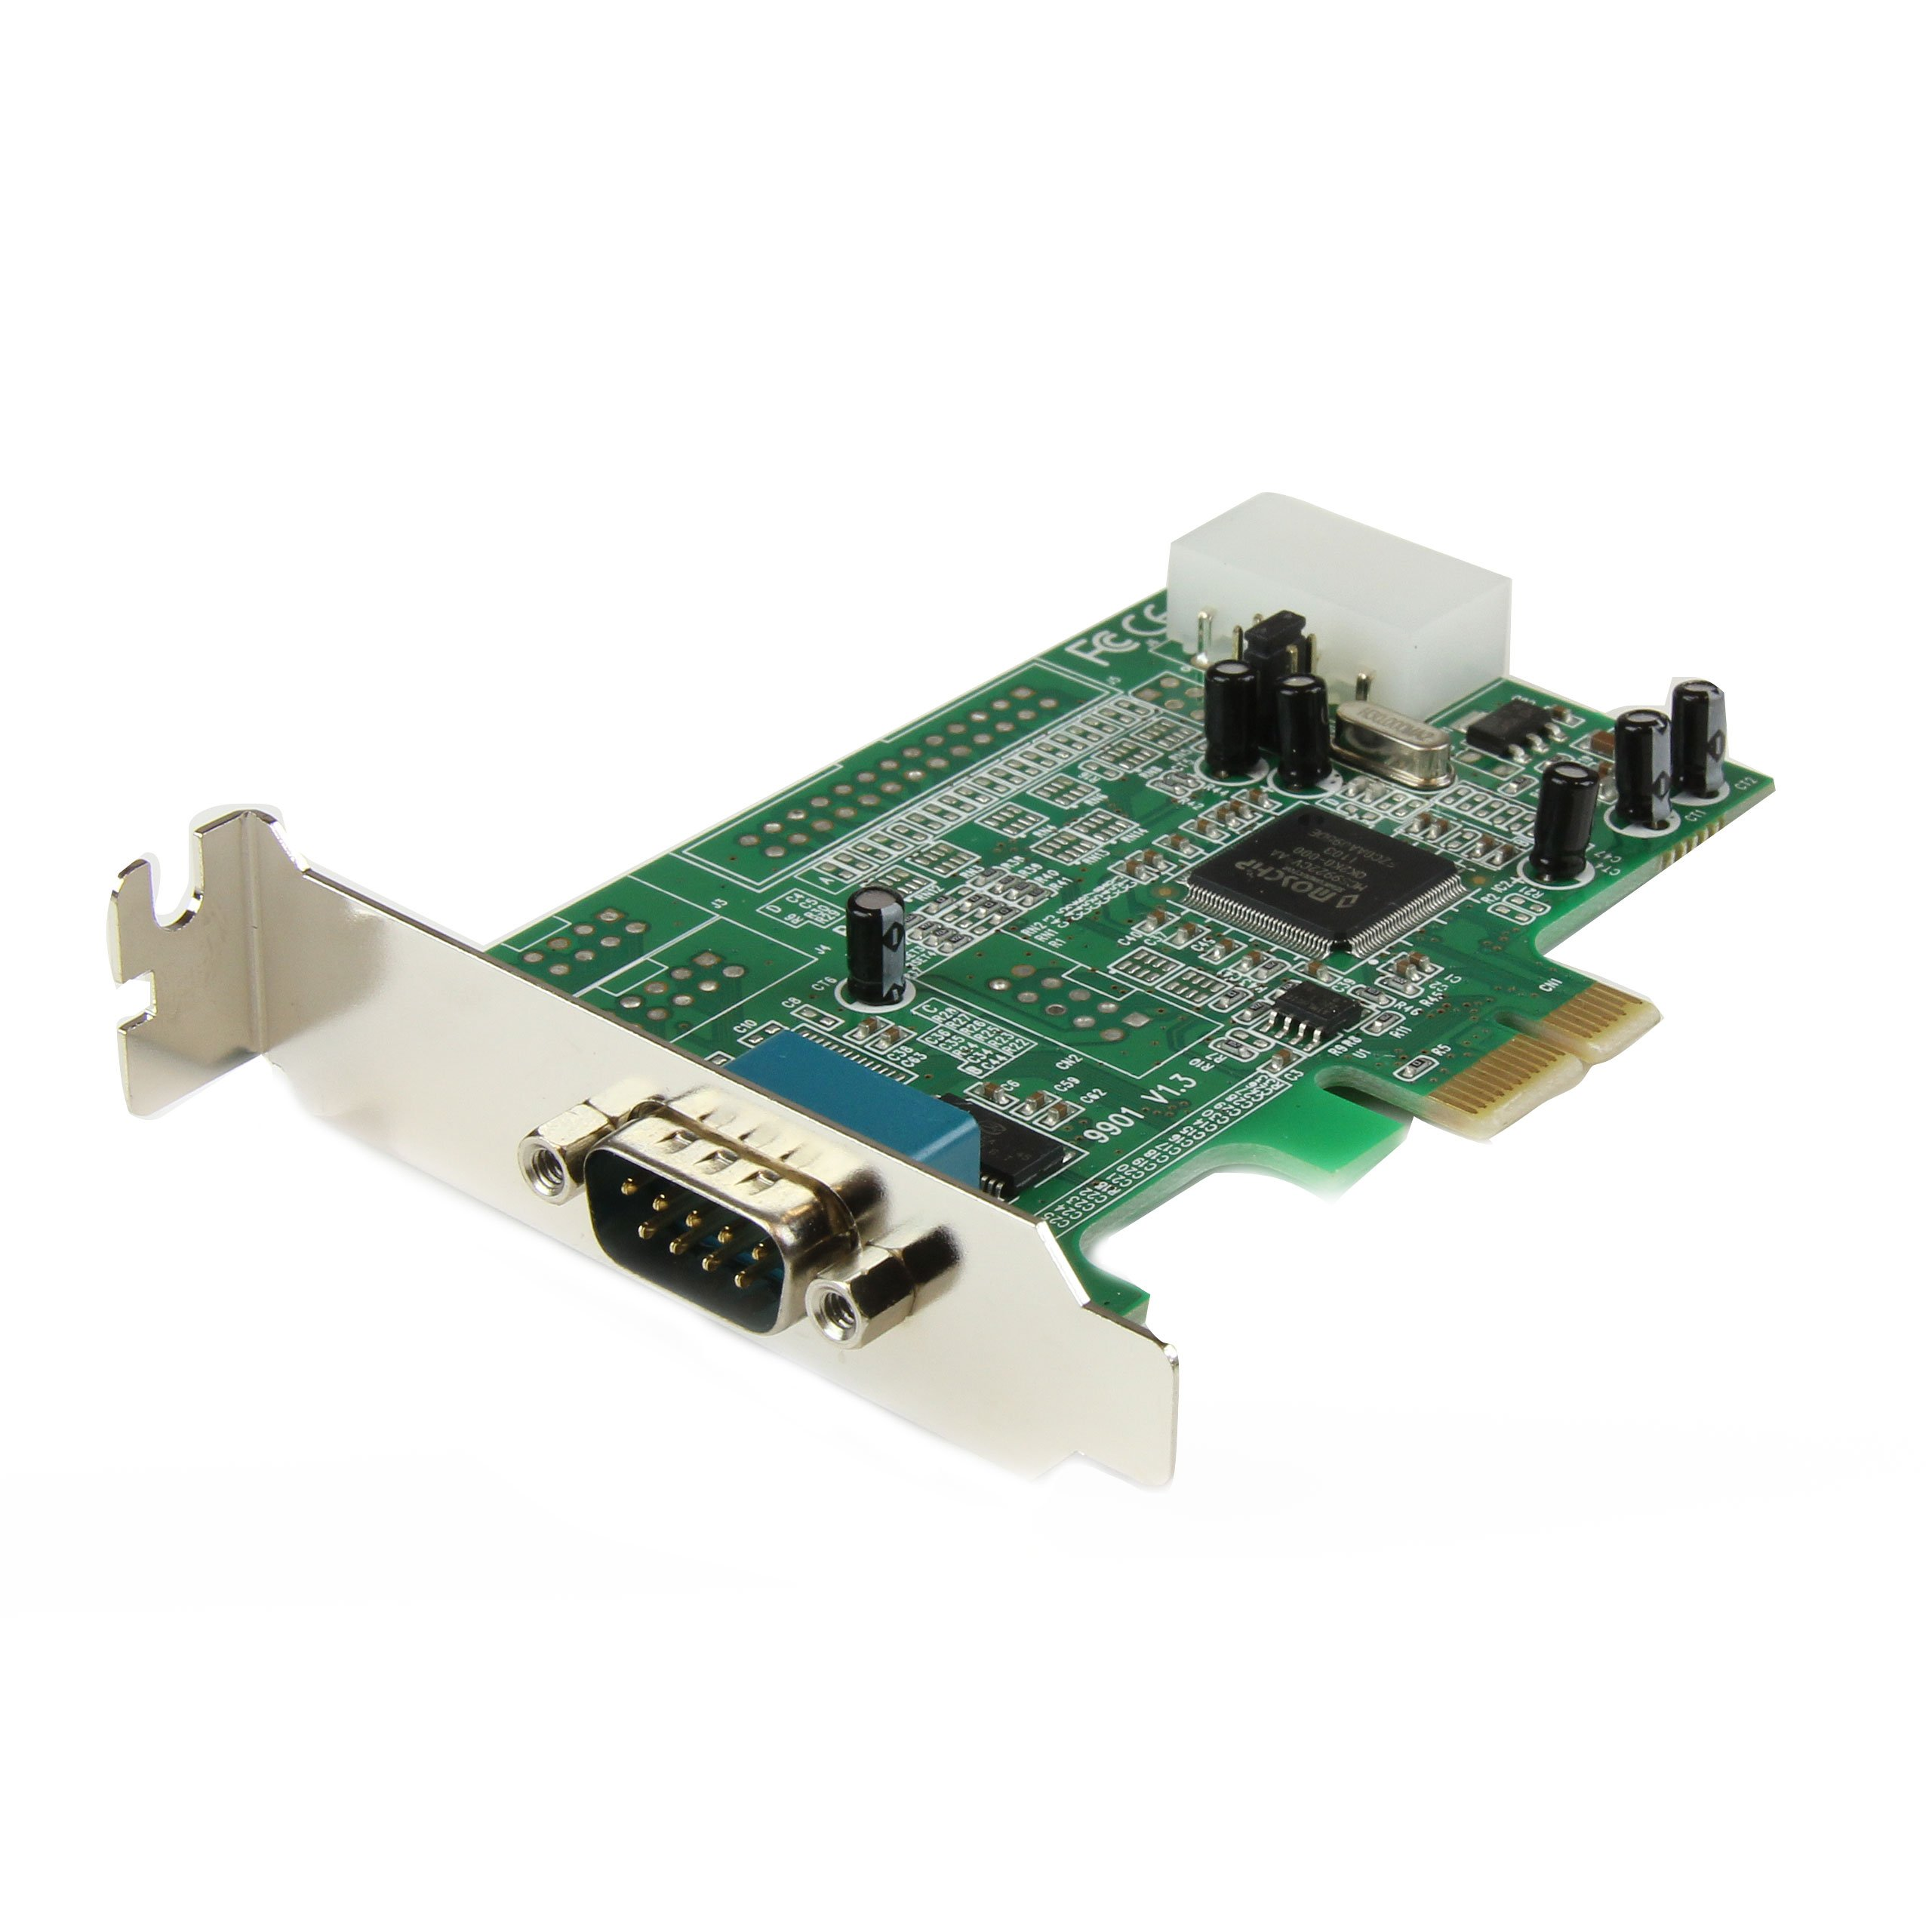 StarTech.com 1 Port Low Profile Native RS232 PCI Express Serial Card with 16550 UART (PEX1S553LP) by StarTech